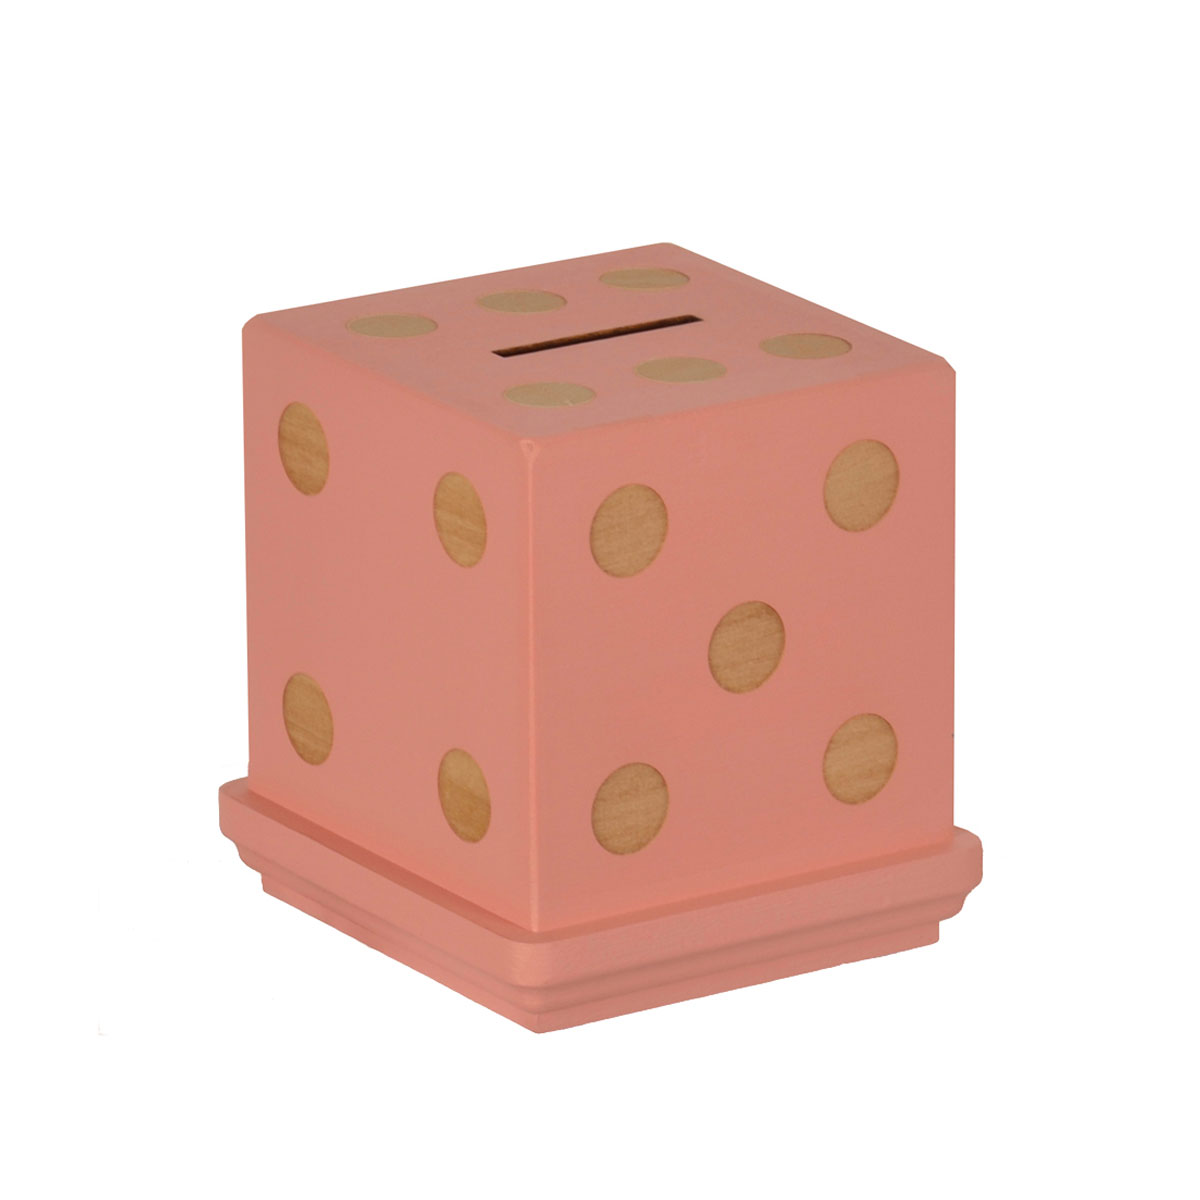 Tree by Kerri Lee Wooden Dice-Shaped Piggy Bank in Pink